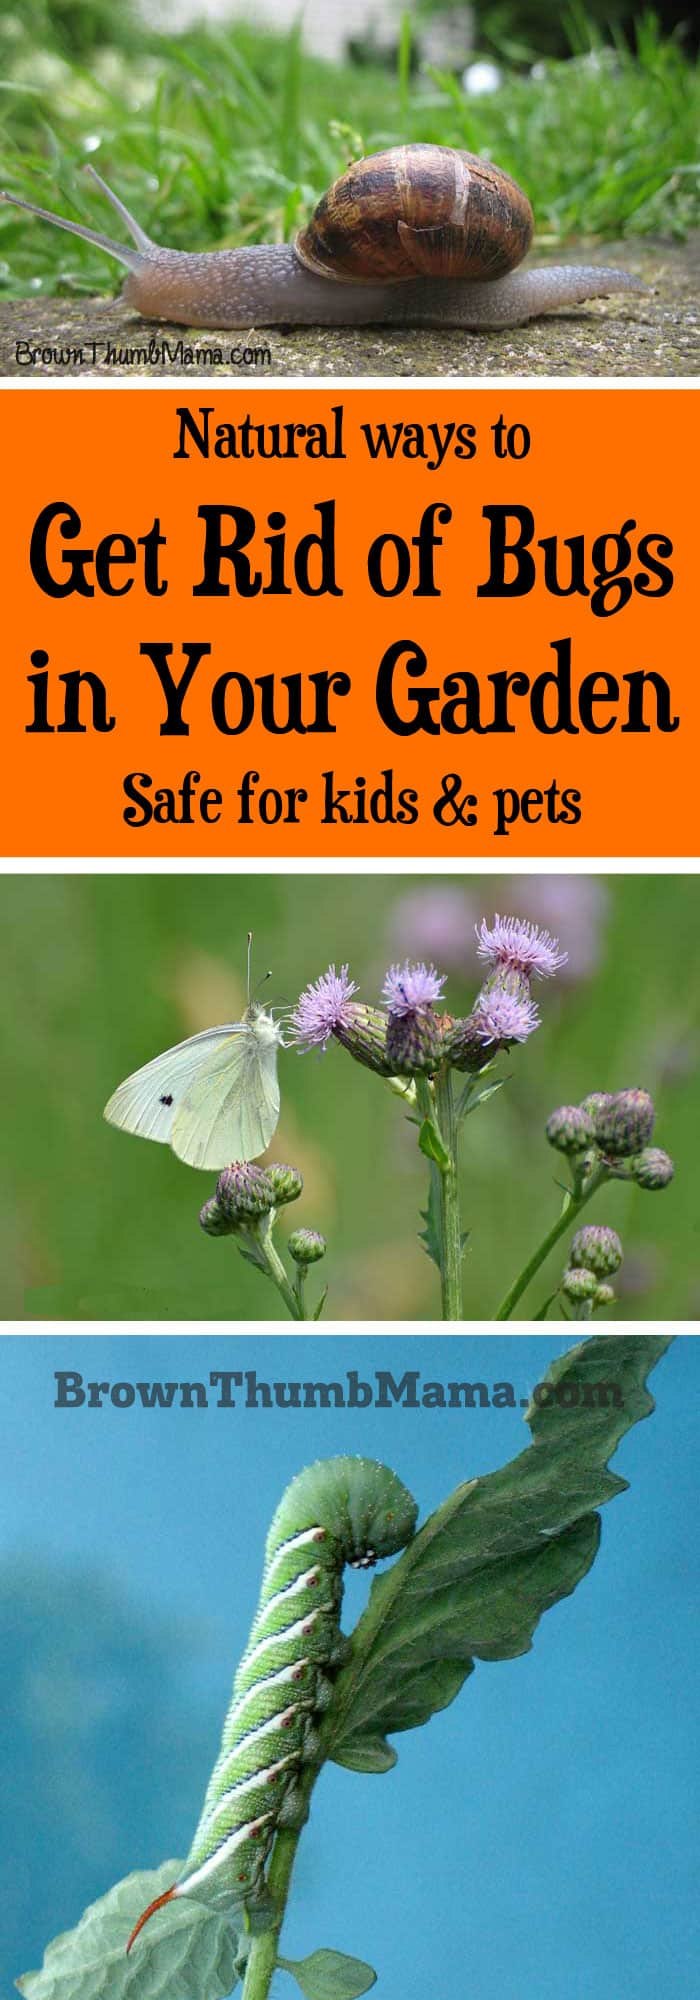 Natural ways to get rid of bugs in your garden brown - How to get rid of bugs in garden ...